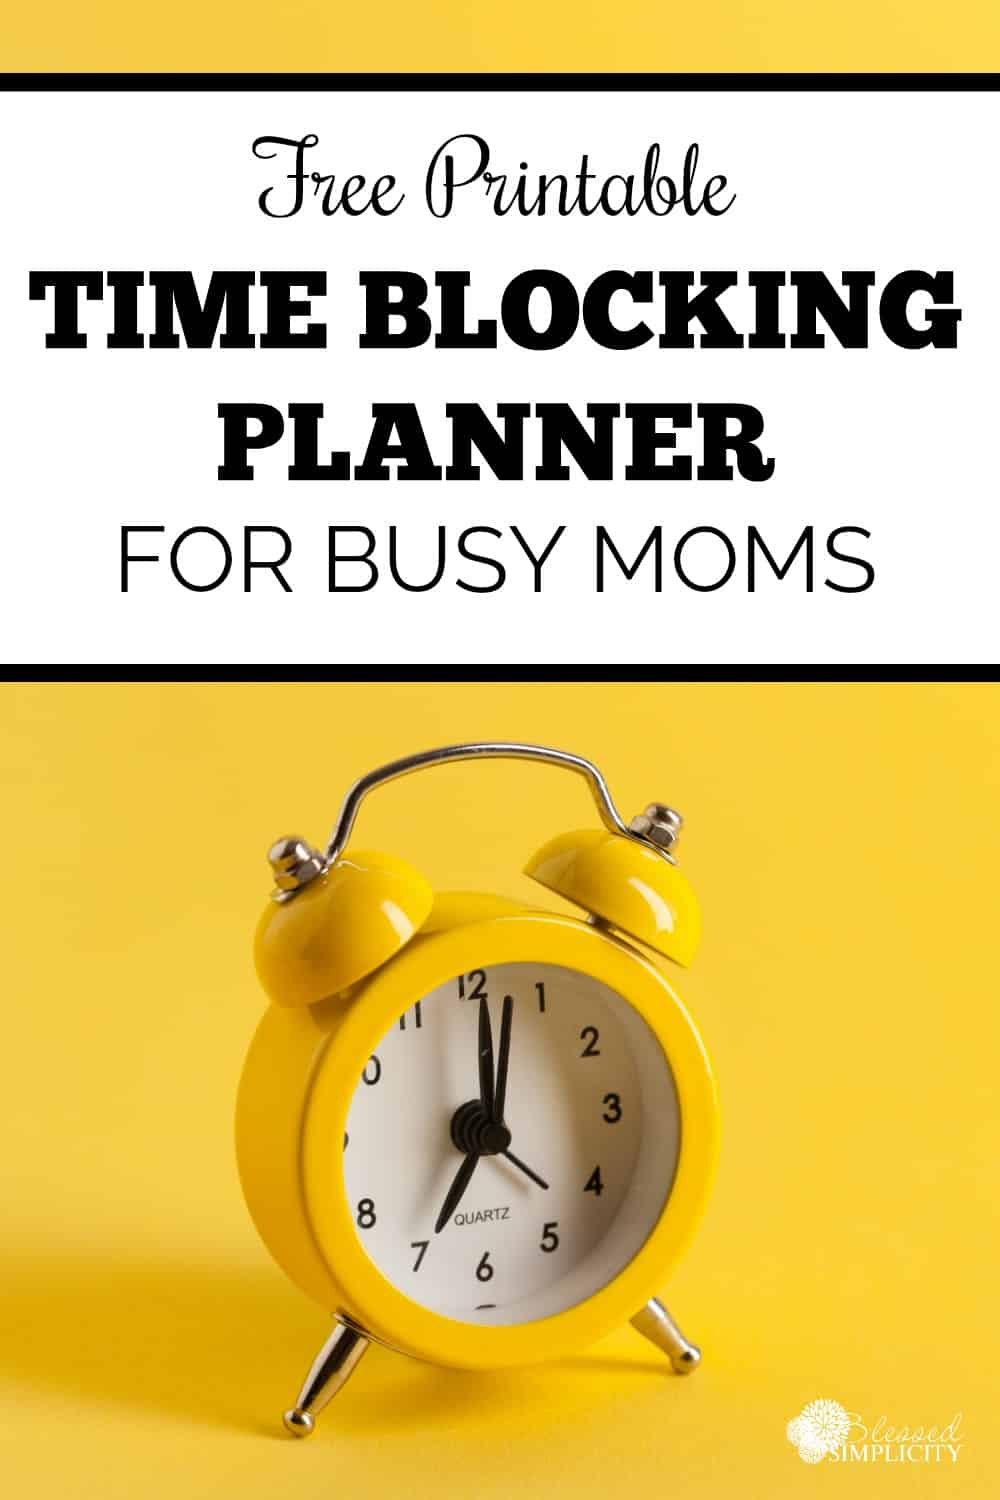 I love this time blocking template! I use it for myself as well as my children. Time blocking has made my mom schedule more manageable.